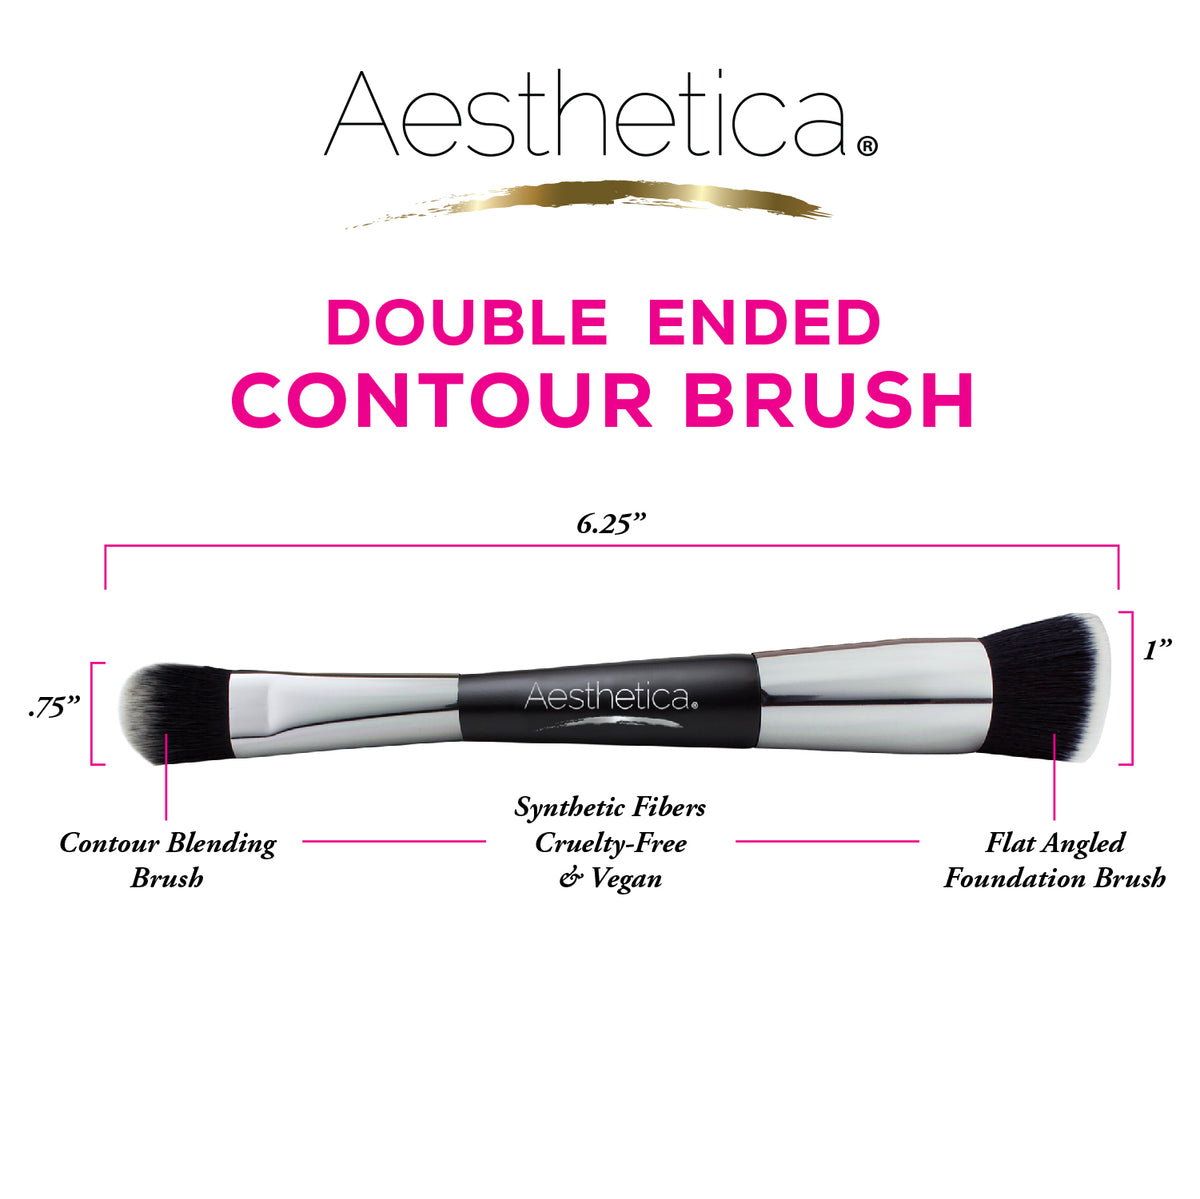 Aesthetica Double Ended Contour Brush